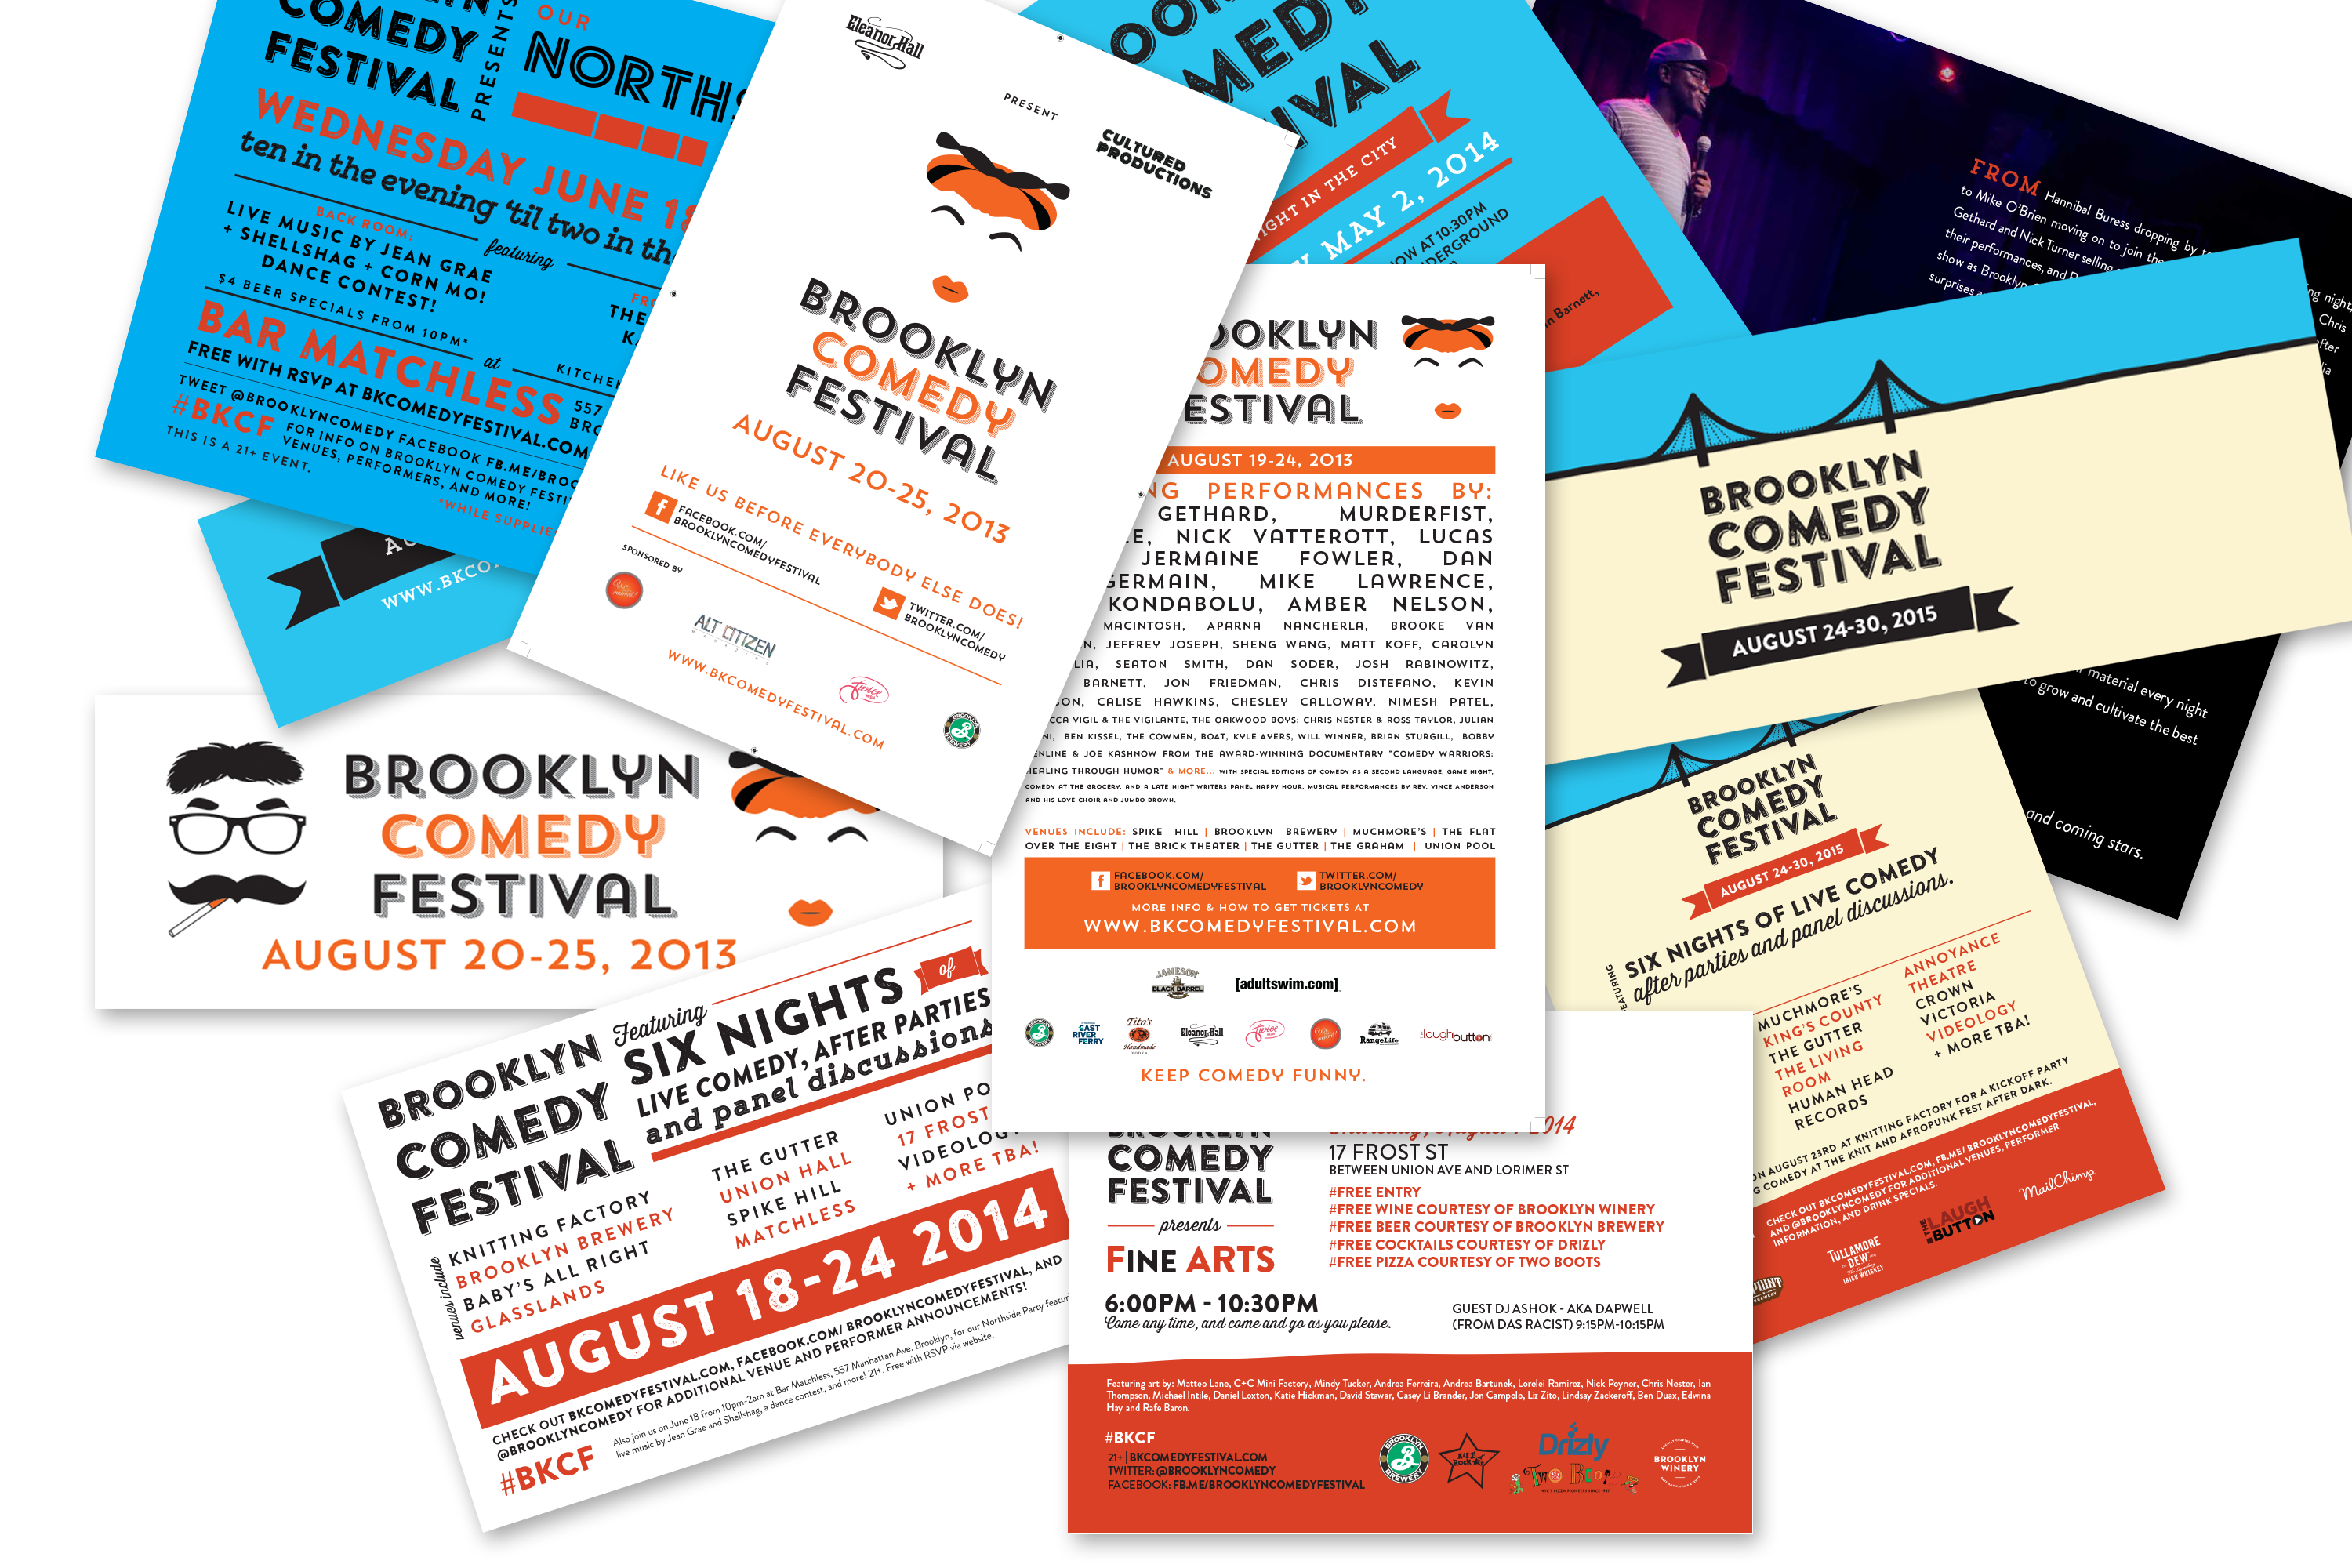 Brooklyn Comedy Festival Branding and Design 1